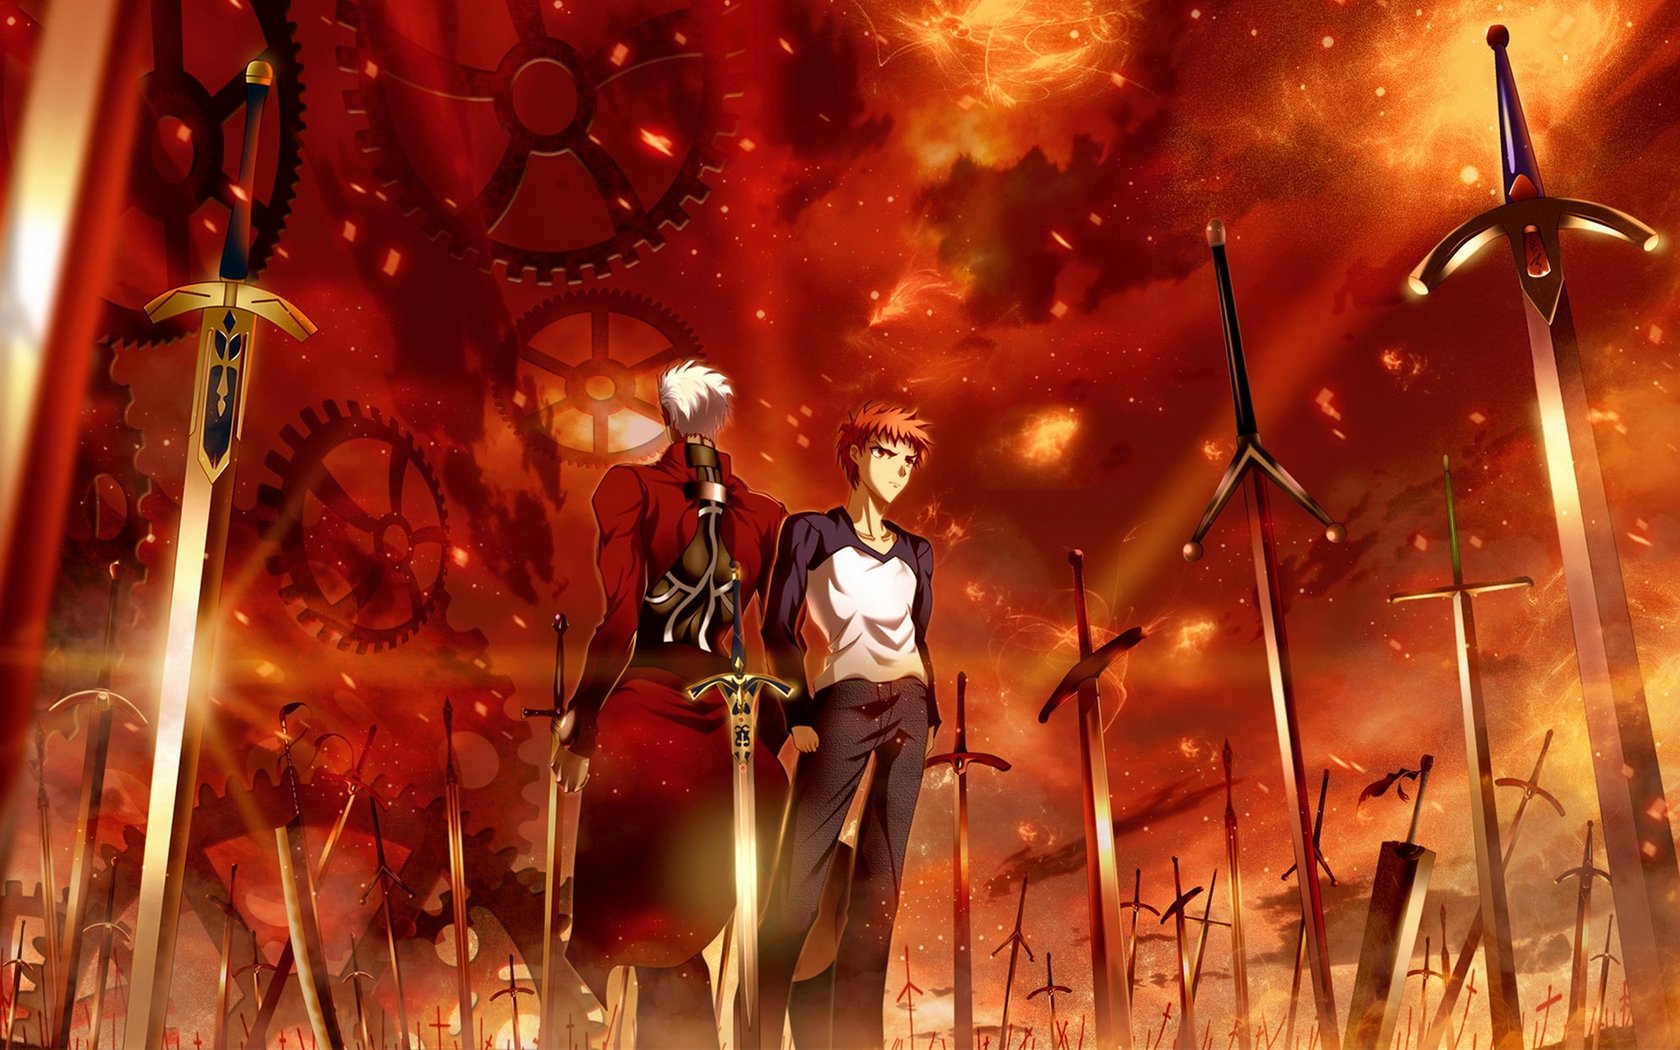 Awesome Fate/Stay Night: Unlimited Blade Works free wallpaper ID:291036 for hd 1680x1050 PC